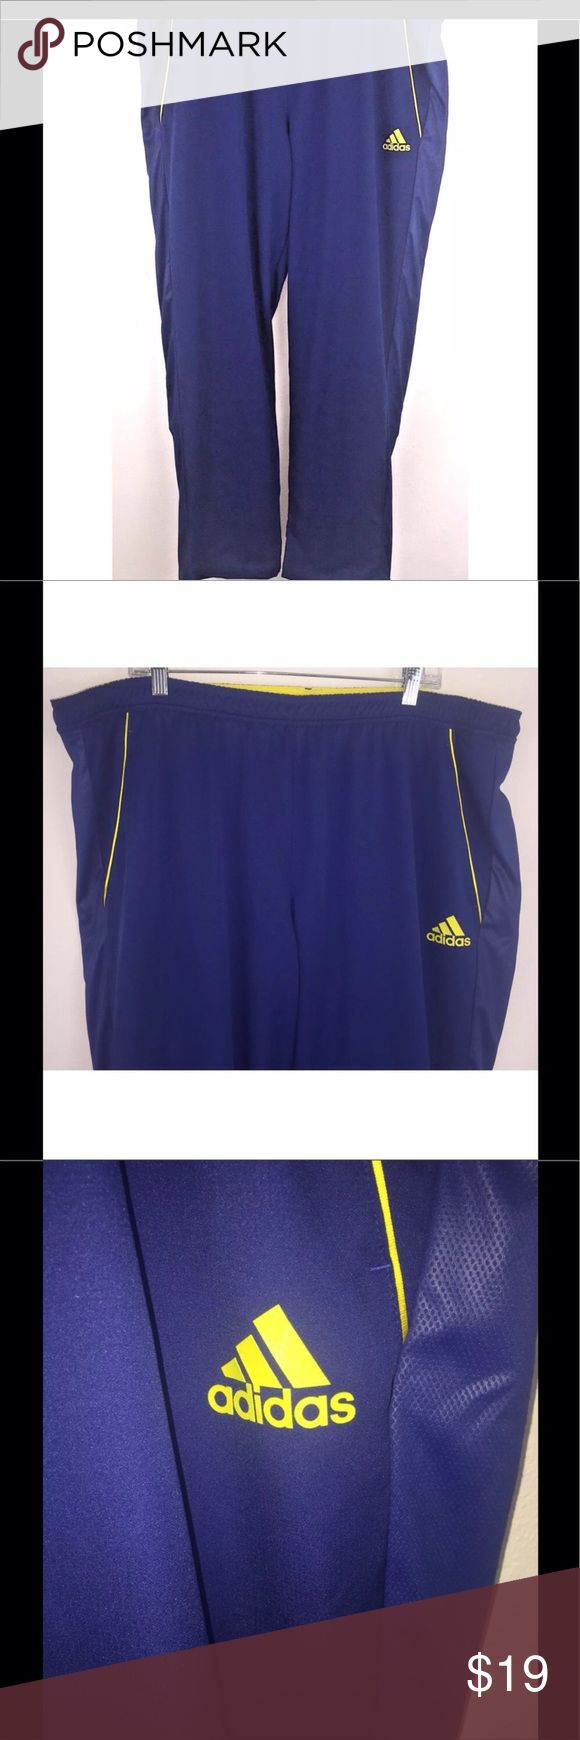 "Adidas Men's Barricade Track Pants Size XXL 2XL Adidas Barricade Track Pants Zipper Cuffs Royal Blue Yellow Climalite Mens 2XL  Stretchy elastic waist with drawstring inside Fully lined Zippered ankles 2 large side pockets Length of zippers at ankles 12"" Excellent, gently used condition - no flaws noted Approximate measurements: Waist 22"" across Inseam 33.5"" Rise 13"" adidas Pants Sweatpants & Joggers"